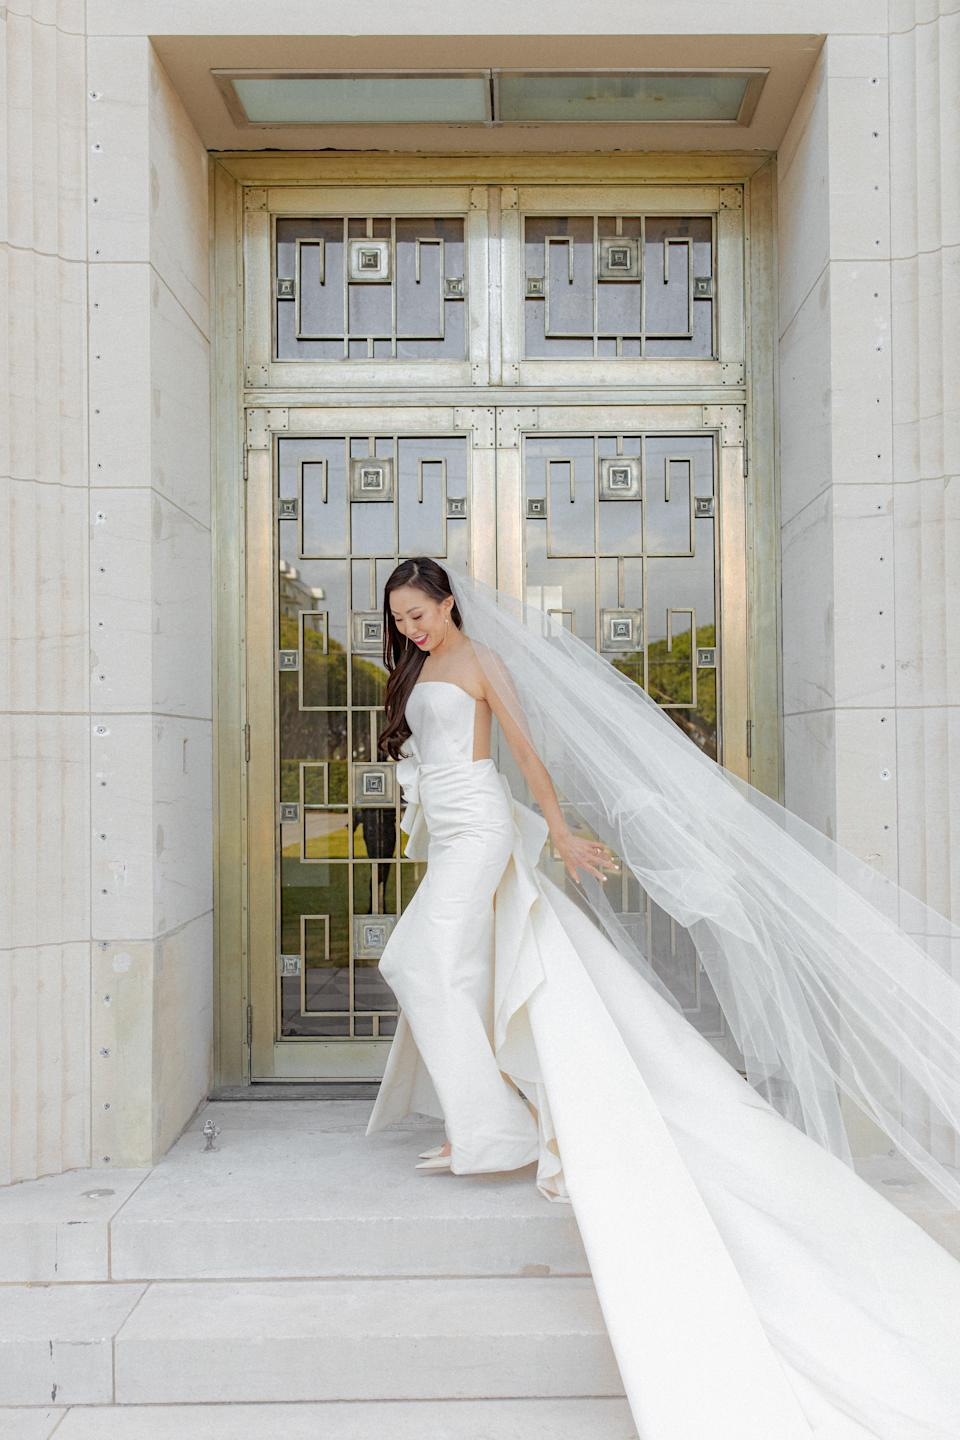 <p>Because my dress was so ornate, I chose to wear a long yet simple white veil. As my wedding planner says, the veil makes the bride look complete!</p> <p>Jewelry-wise, my friend Andrew Shang, former market editor of <em>WWD</em>, helped me pick a pair of earrings from Hirotaka. It featured a long, lean sculptural line and a single pearl to match the buttons on the back of my dress and the venue. </p>